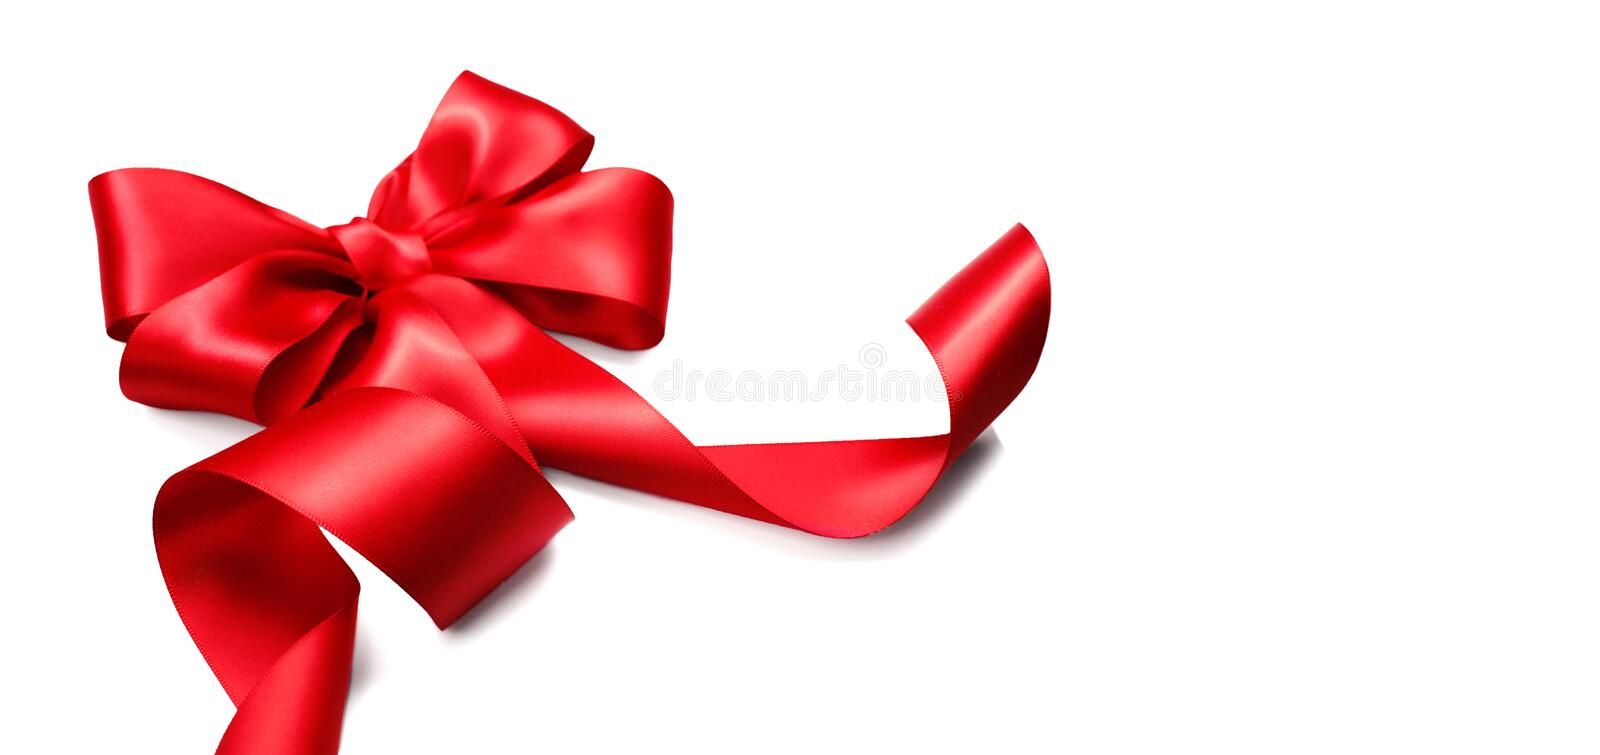 Red satin gift bow. Ribbon isolated on white royalty free stock photos